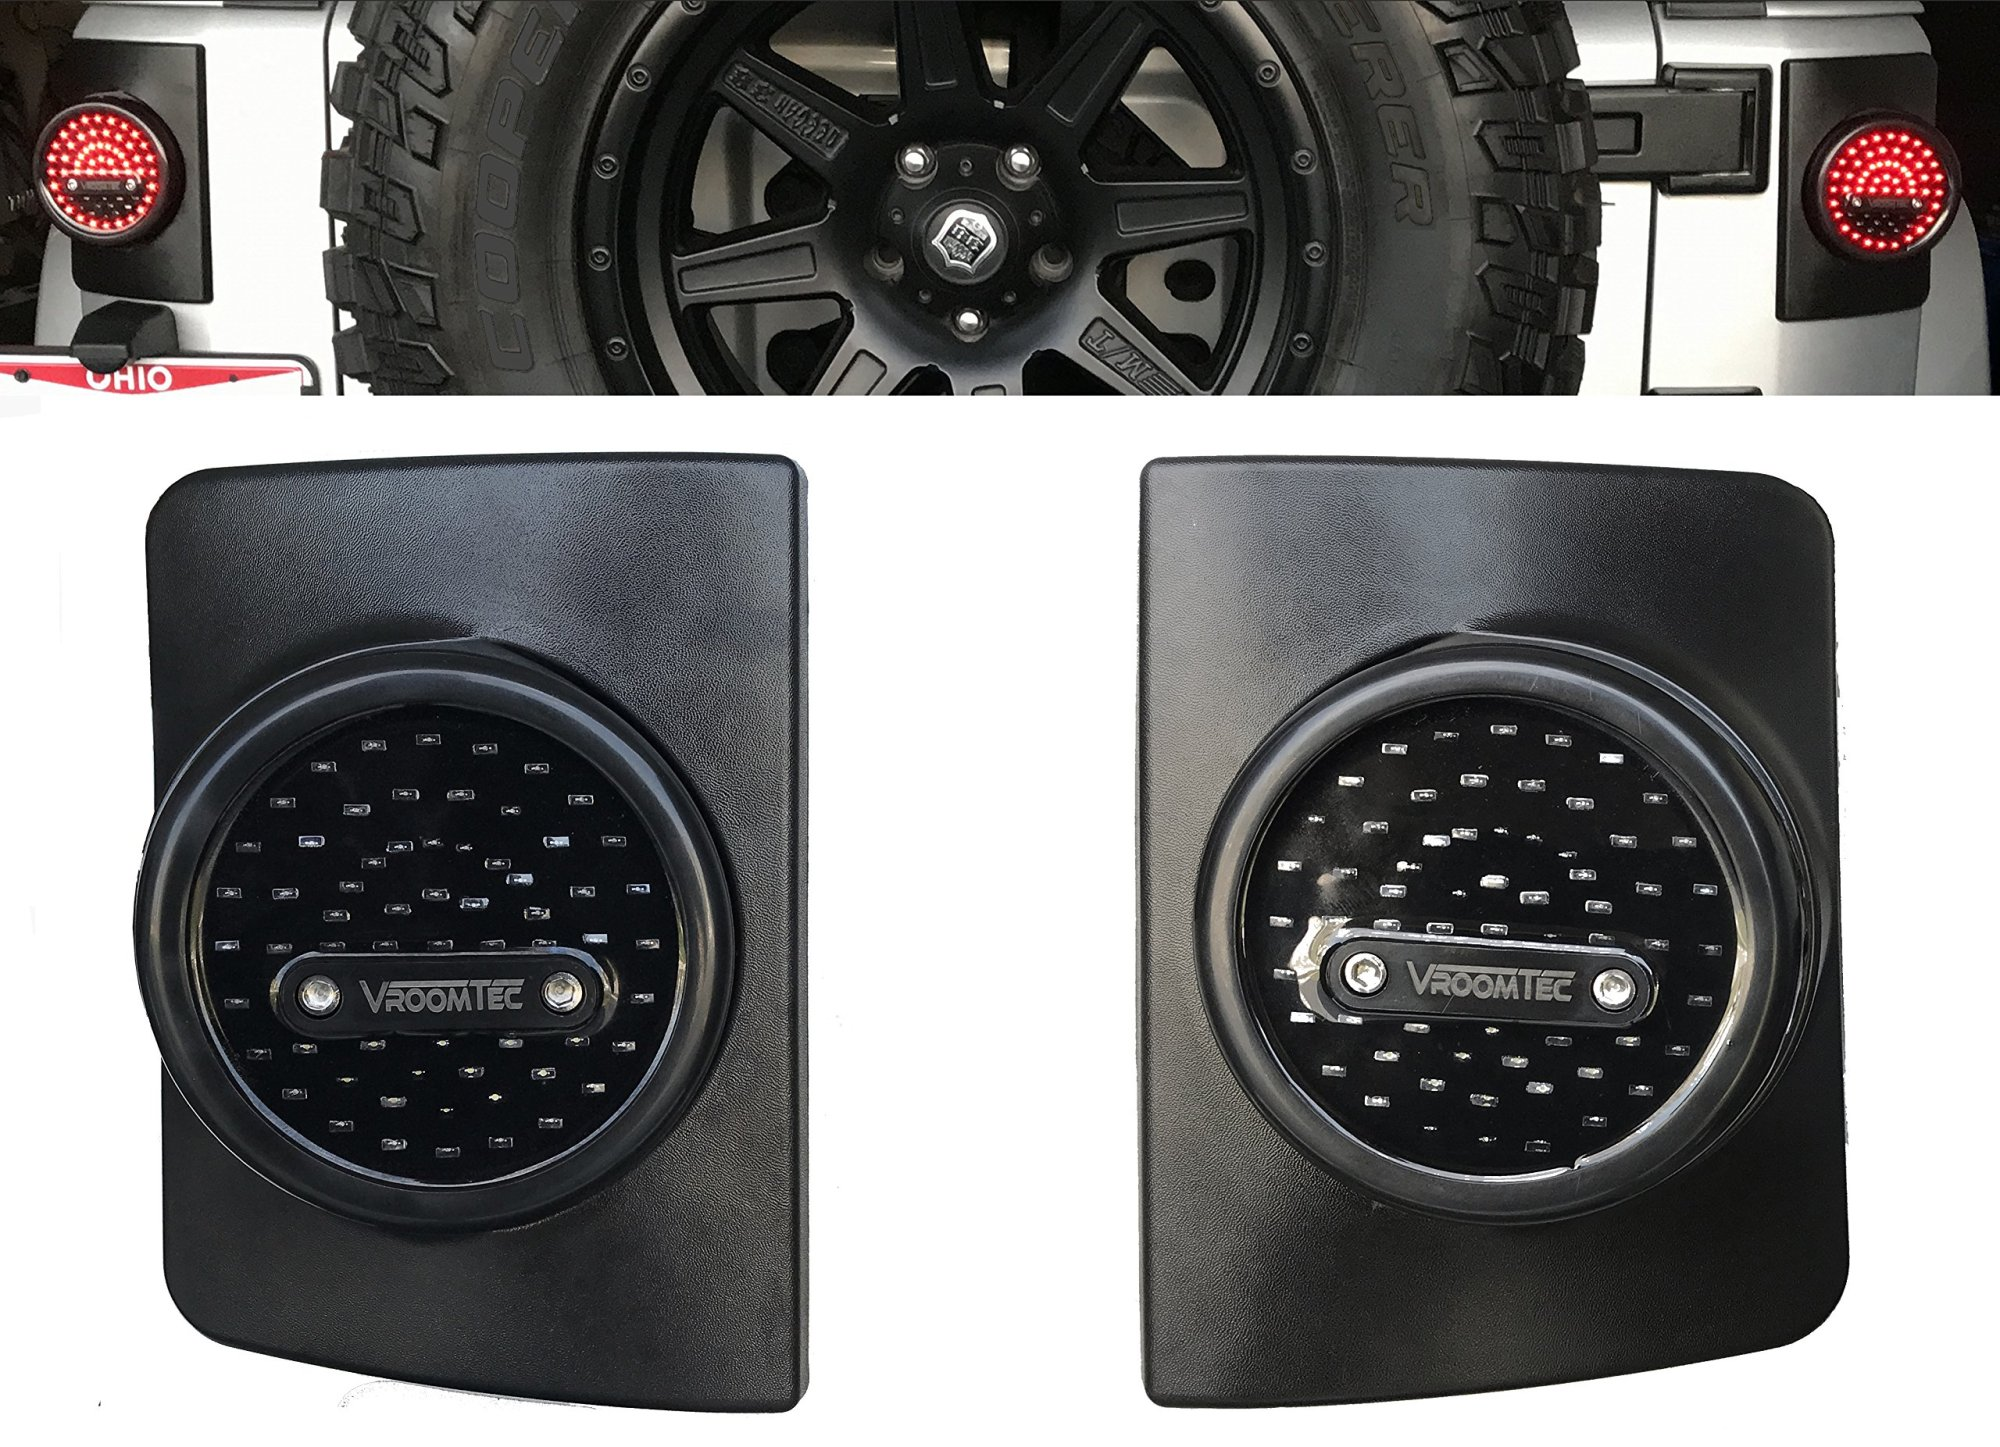 hight resolution of vroomtec jeep wrangler jk jku led round tail lights attractive design and enhanced vehicle safety